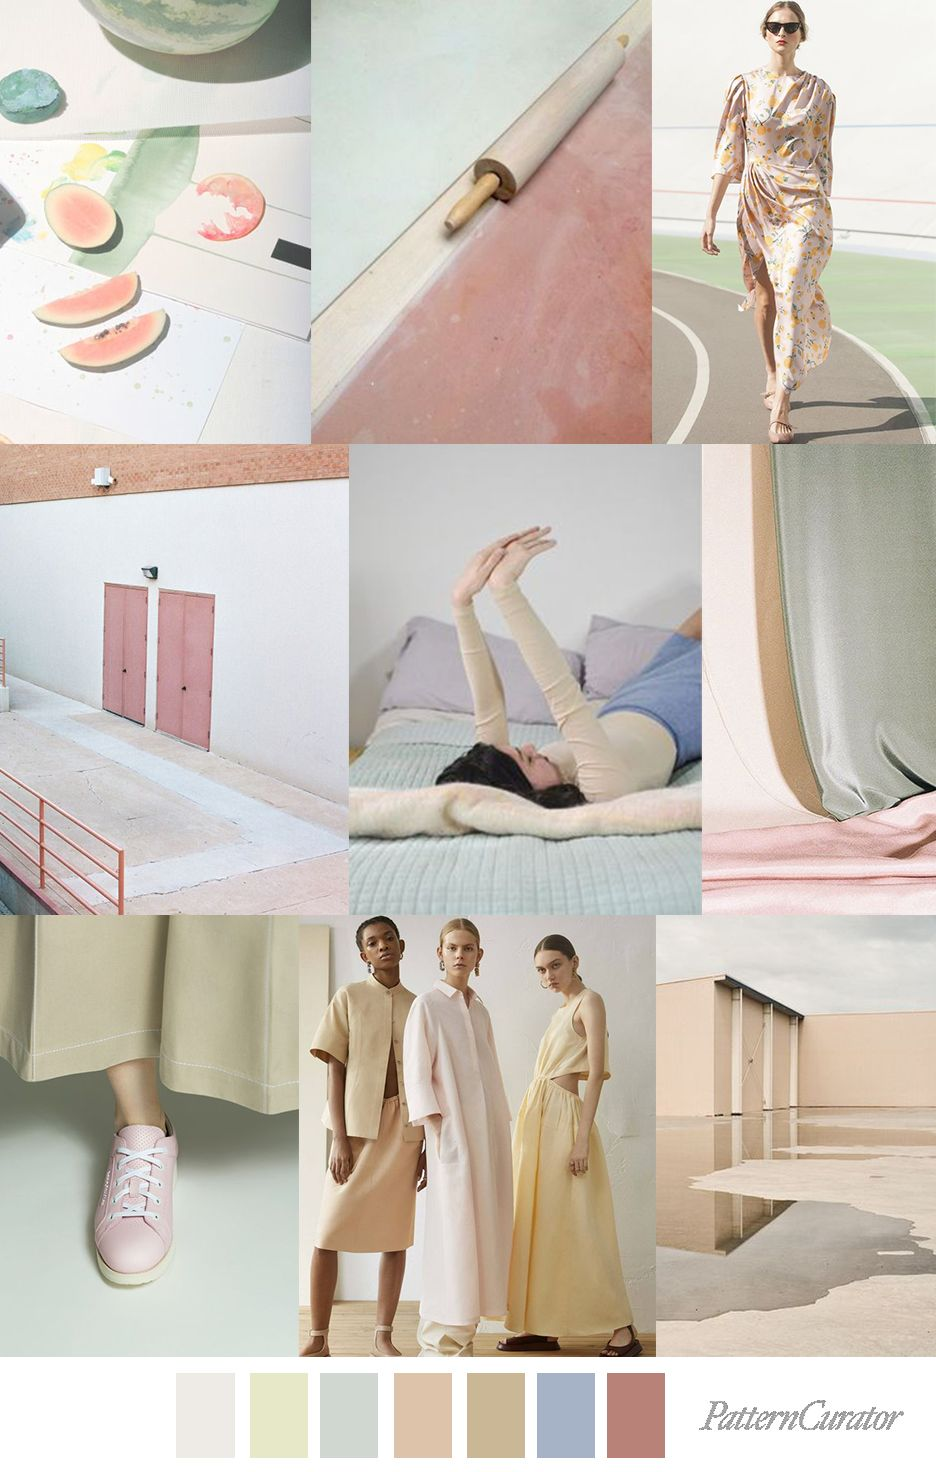 new concept b442f 2470a PASTEL NEUTRALS | Trends 2019-2020 | Colorful fashion, Color